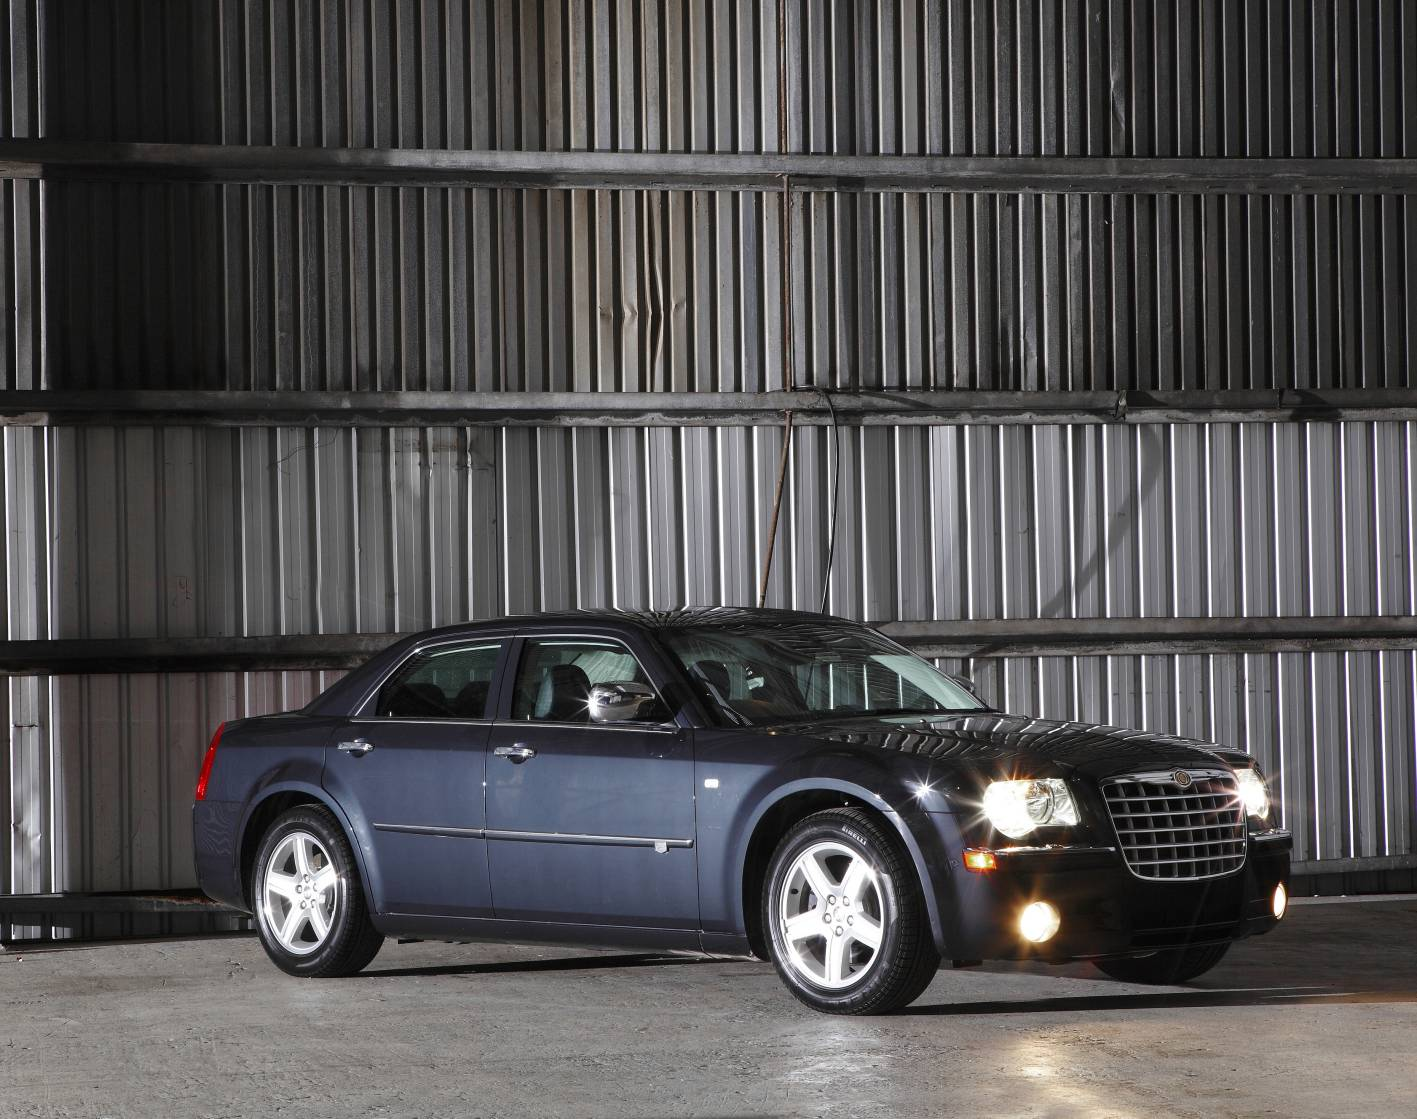 review 2010 chrysler 300c 5 7 hemi v8 car review and. Black Bedroom Furniture Sets. Home Design Ideas